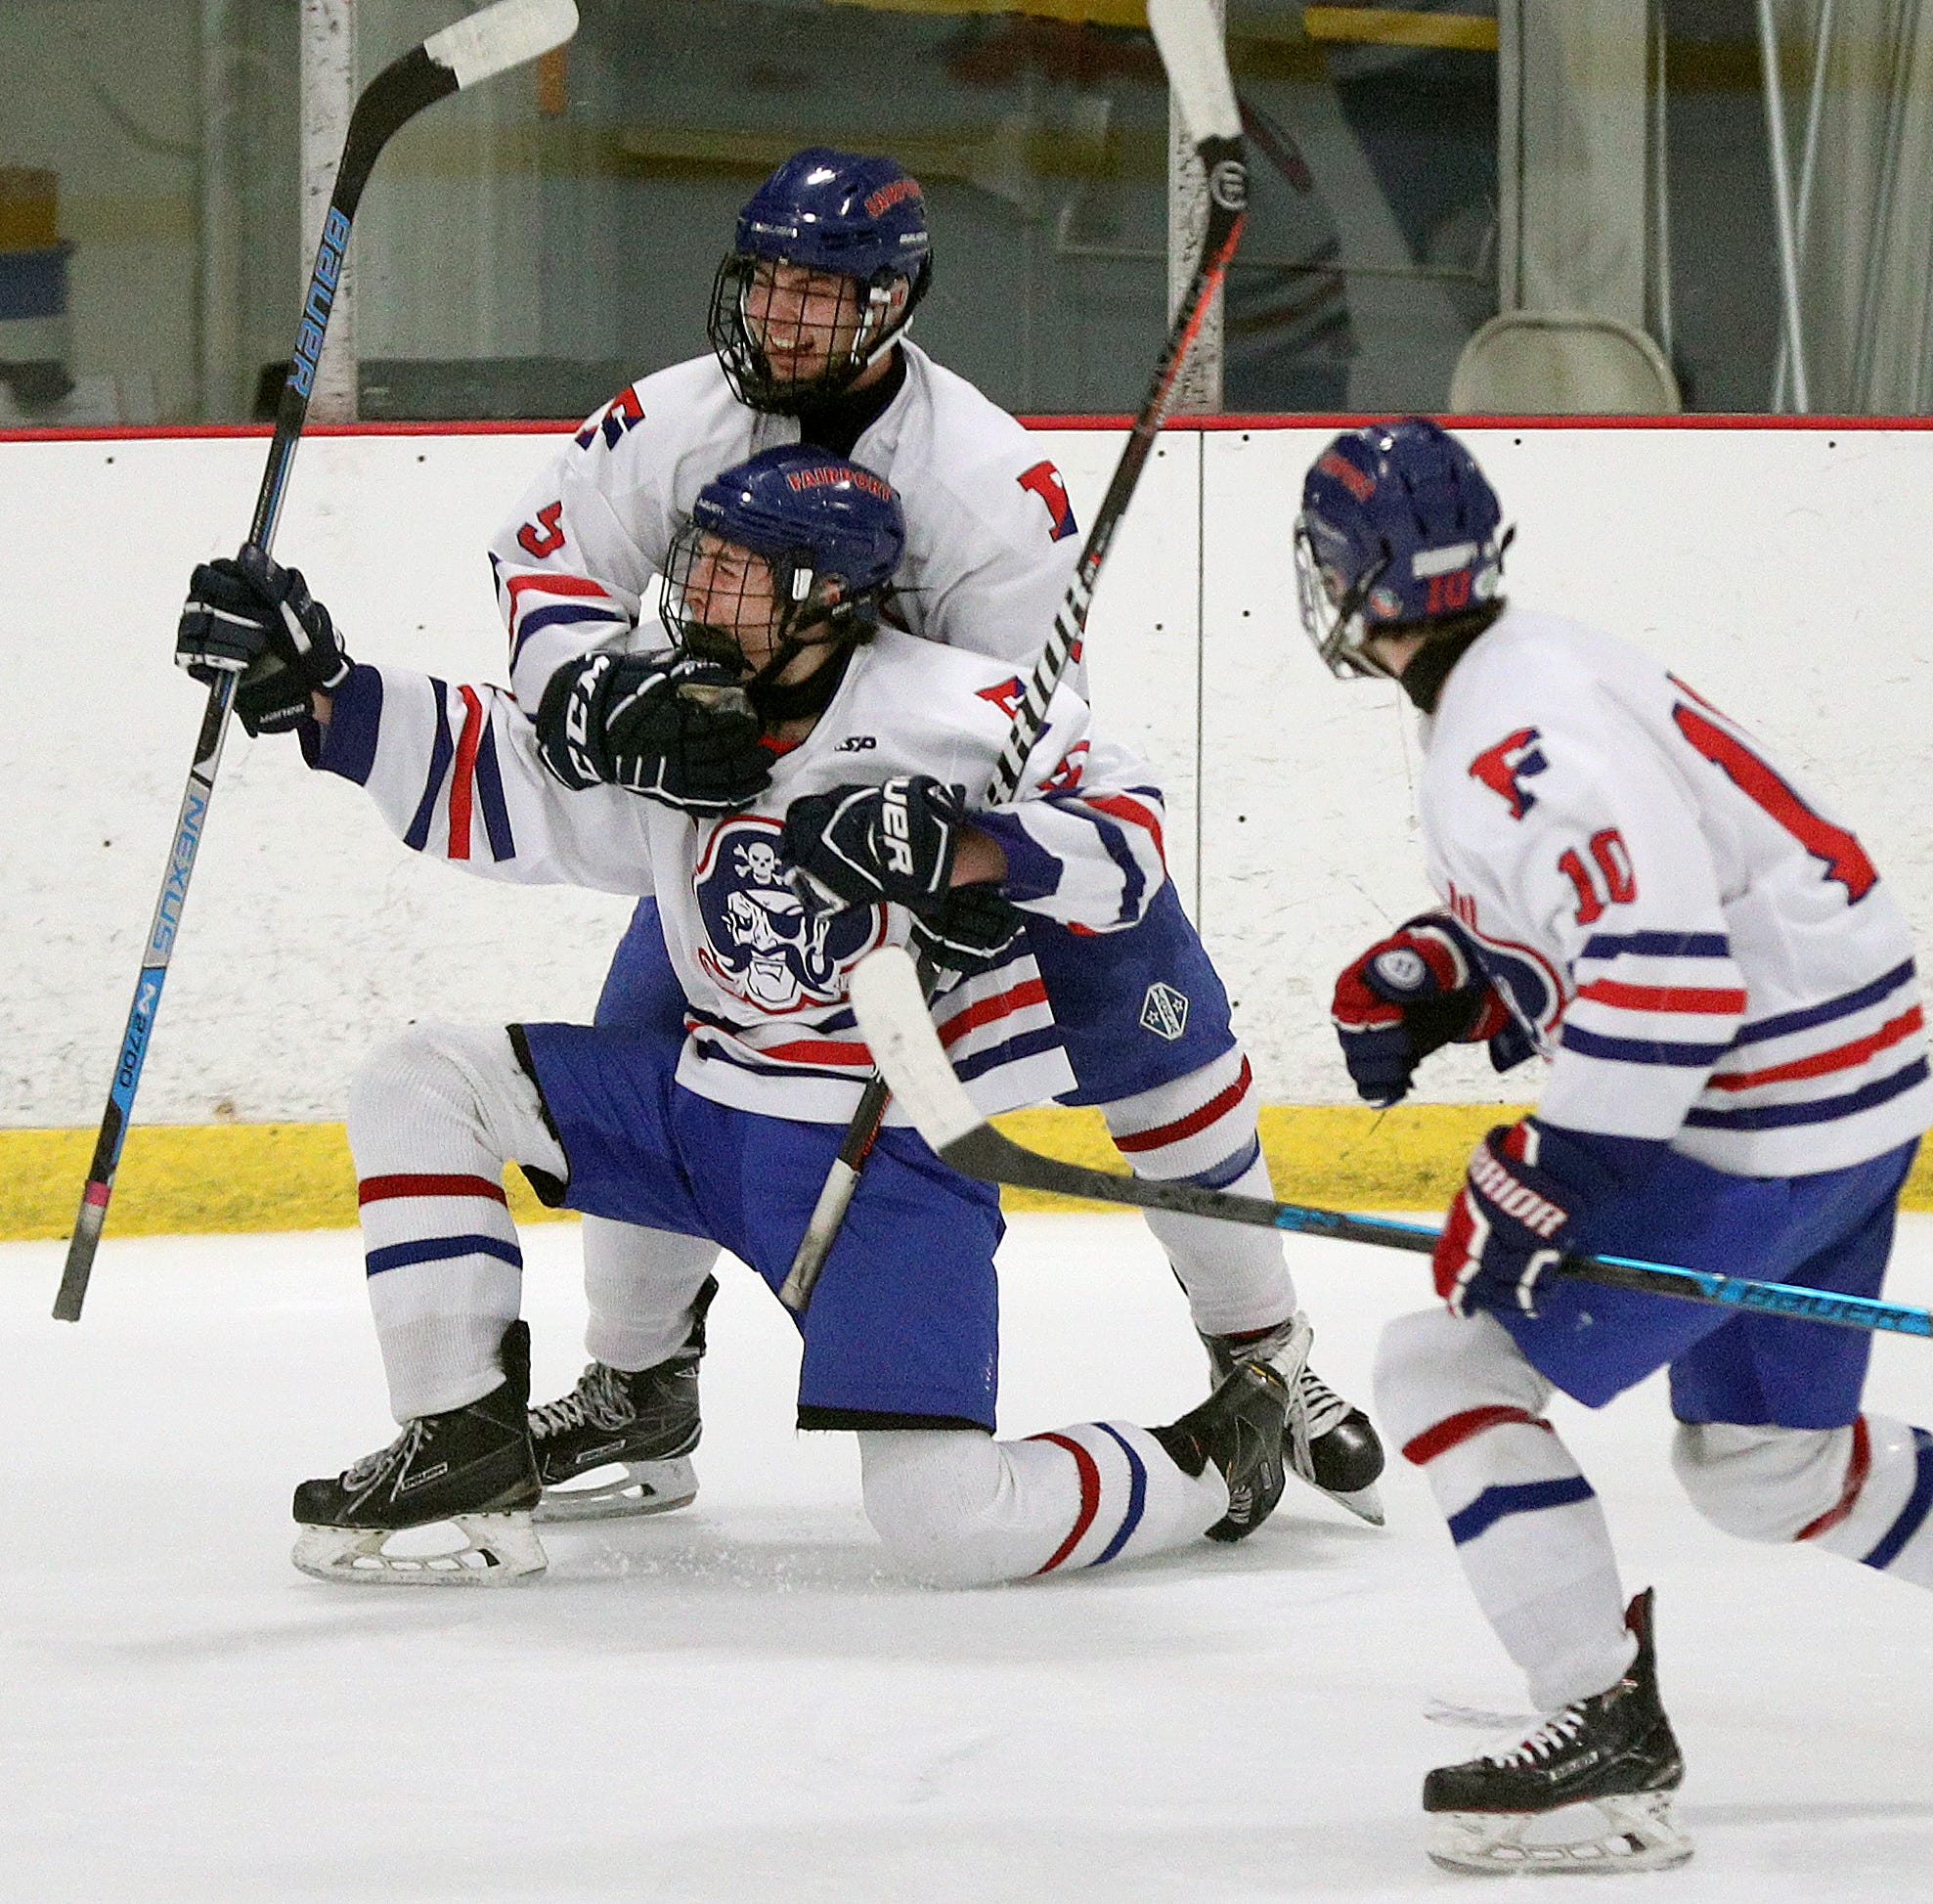 Section V hockey poll: Rankings get tighter as regular season winds down